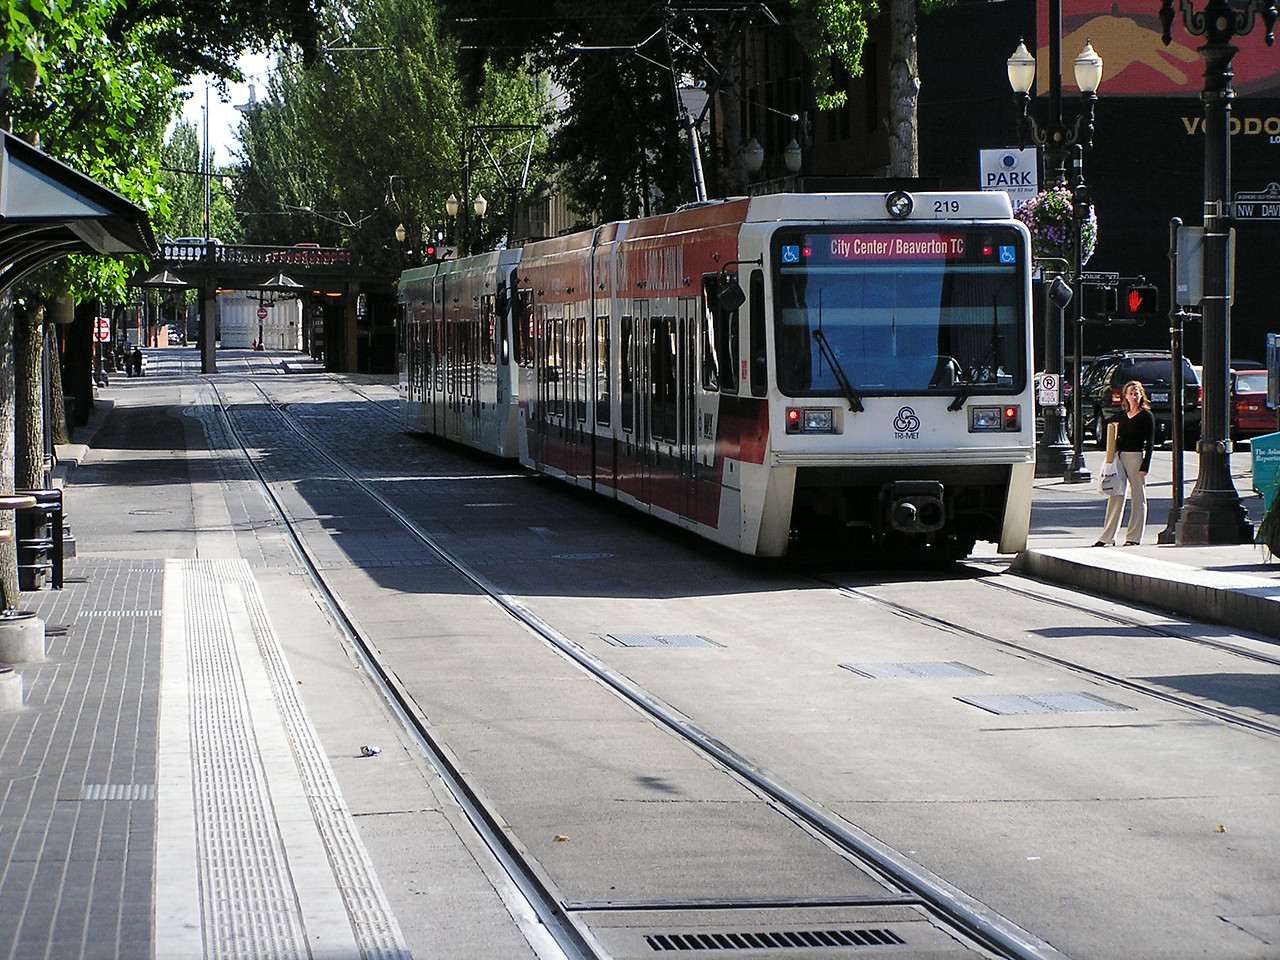 We took the light rail commuter train to our hotel from the train station in Portland.